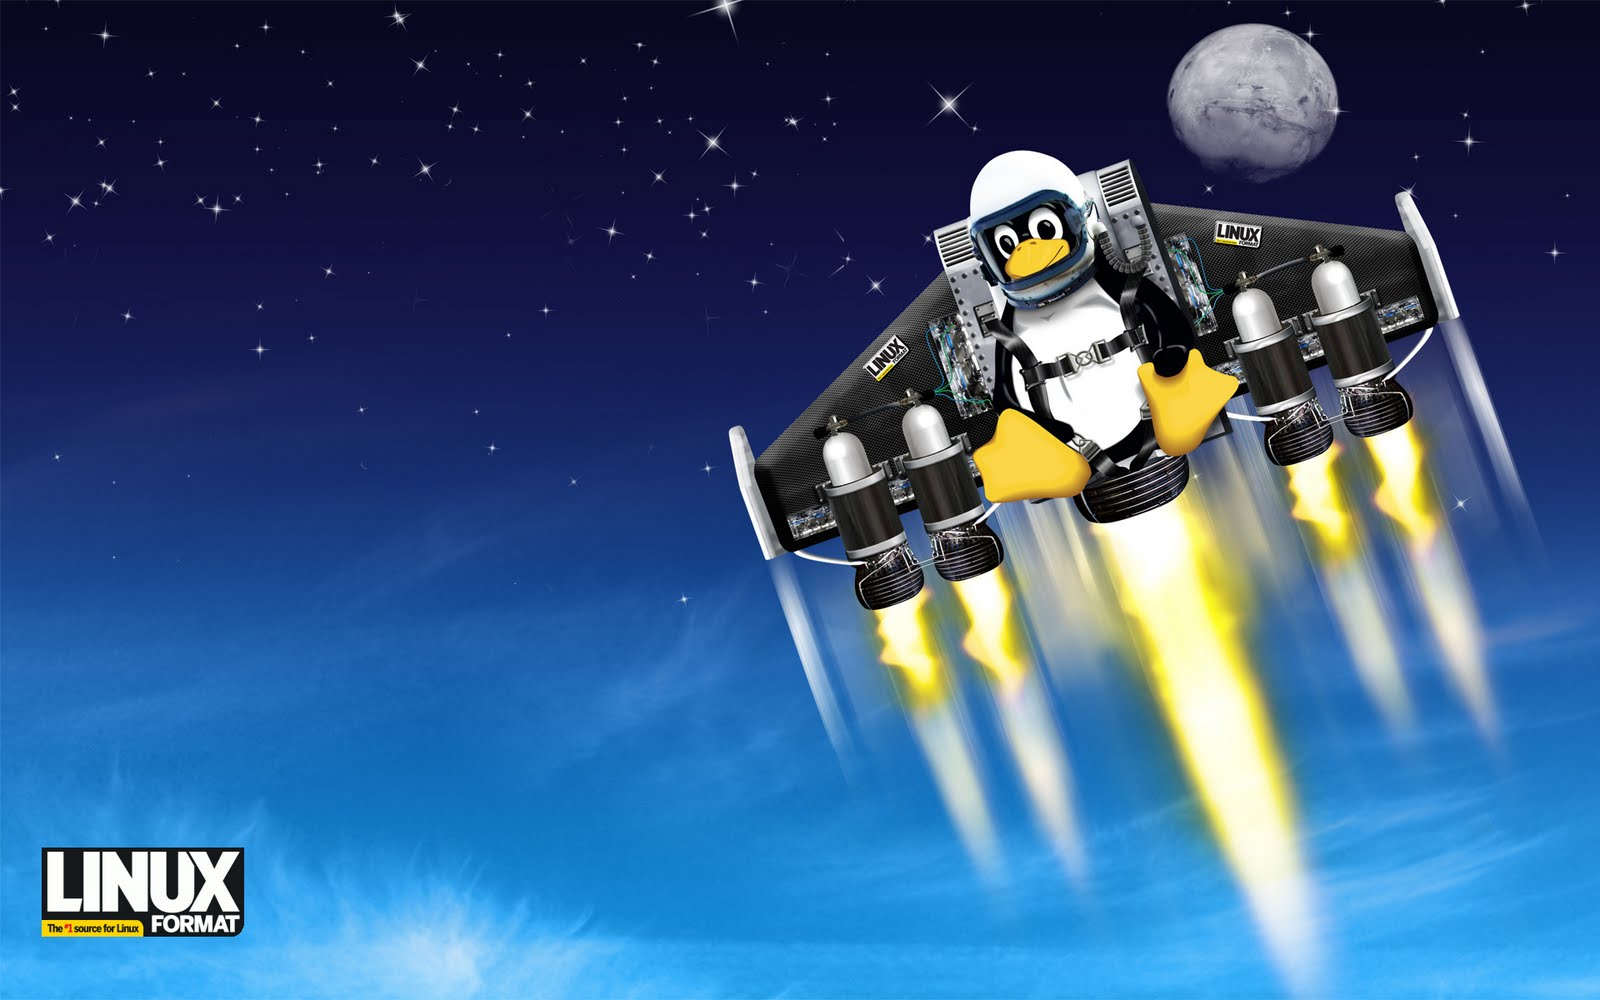 Linux Logo and HD Backgrounds | Desktop Wallpapers